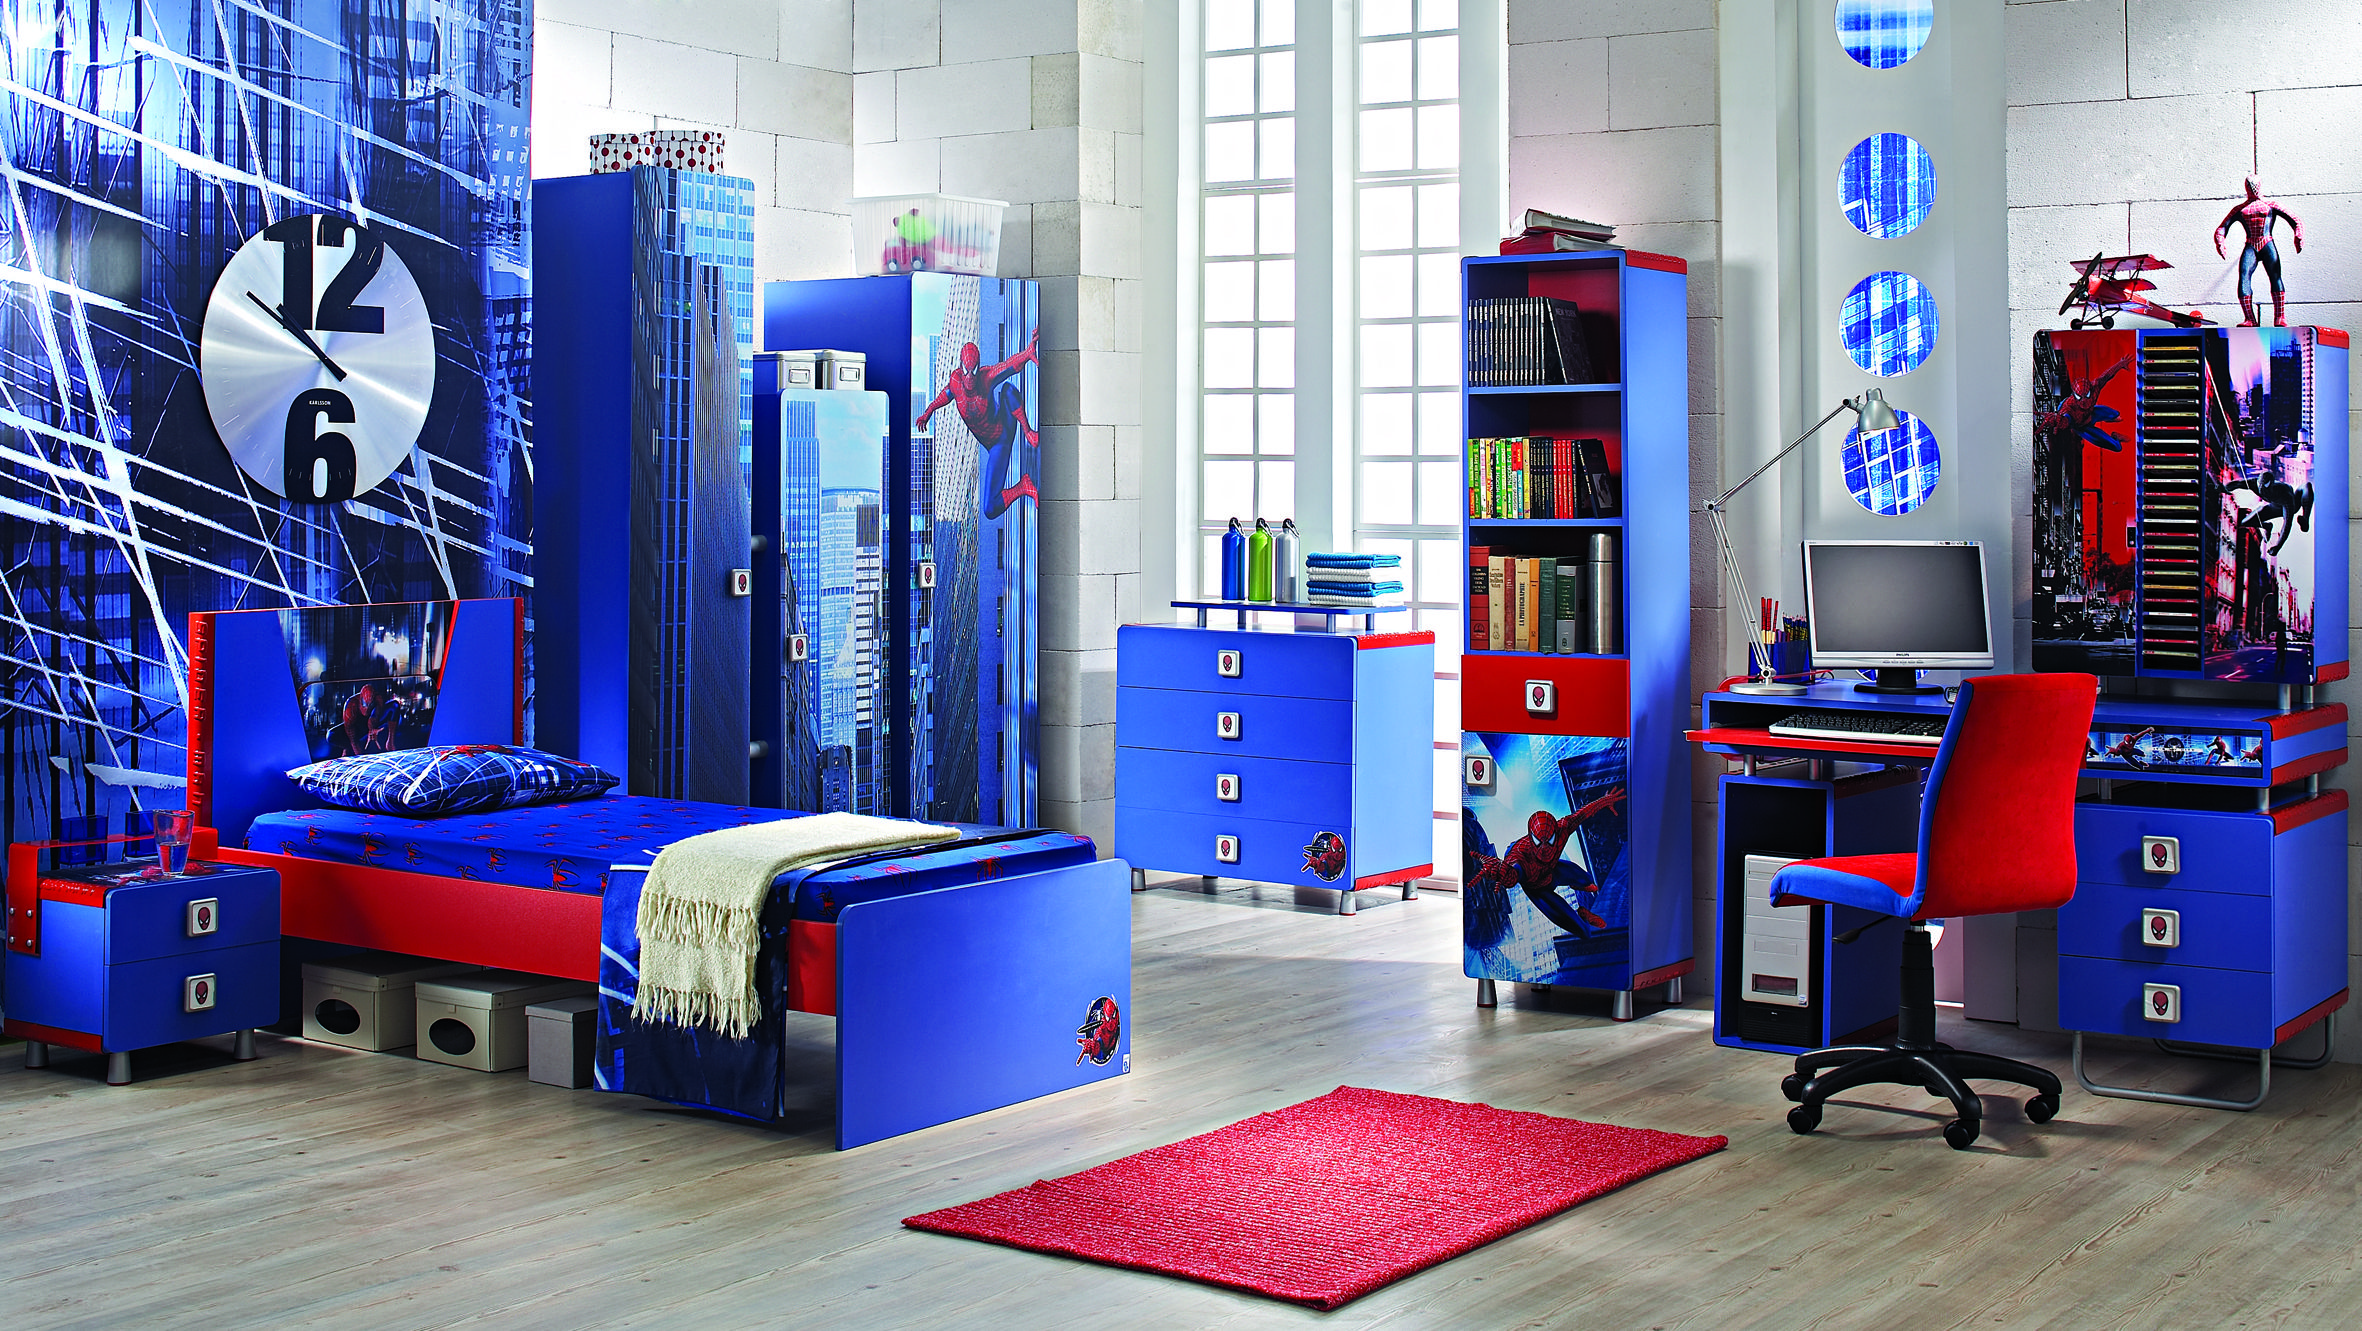 bedroom blue color of bookshelving also wardrobe and dresser also bedstead also red mat in boys bedroom themesboys - Boy Bedroom Theme